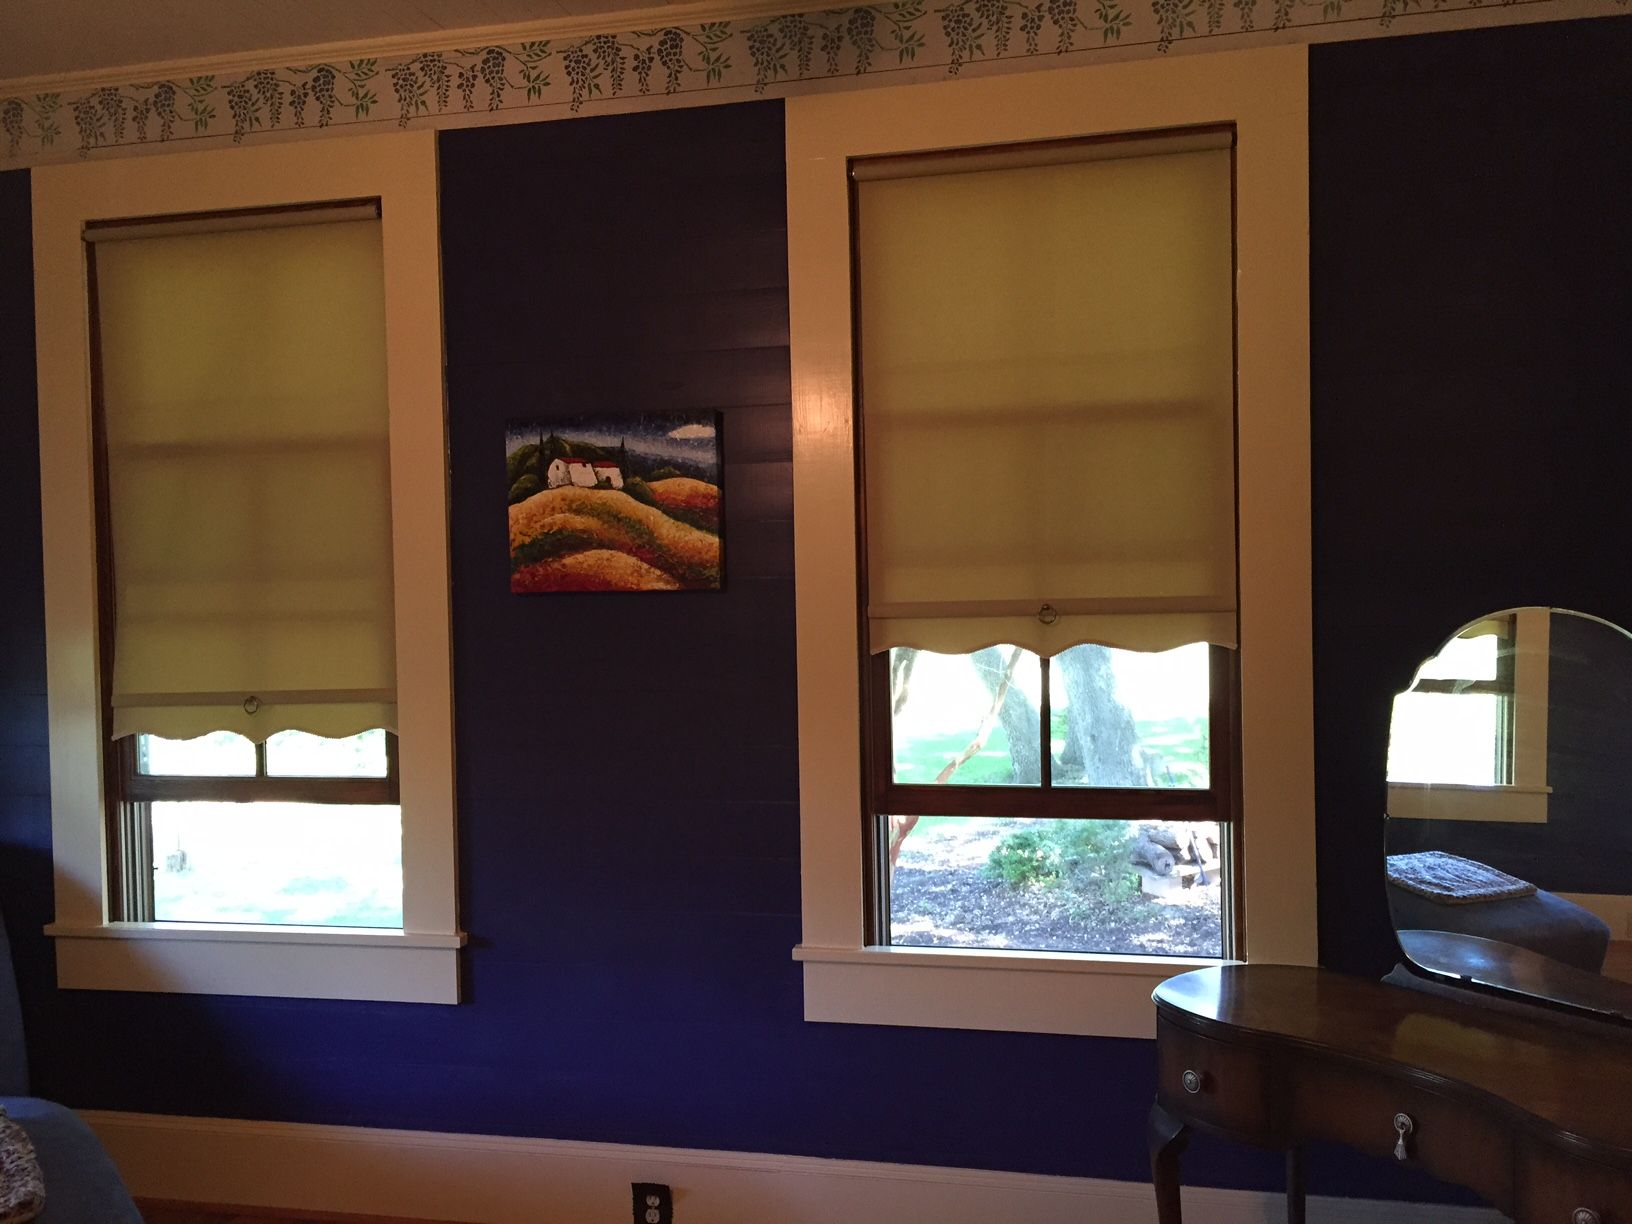 How to fix springs in roller shades and adjust spring tension - Cotton Ecru Spring Roller Shades Bungalow Scallop And 4 Fringe